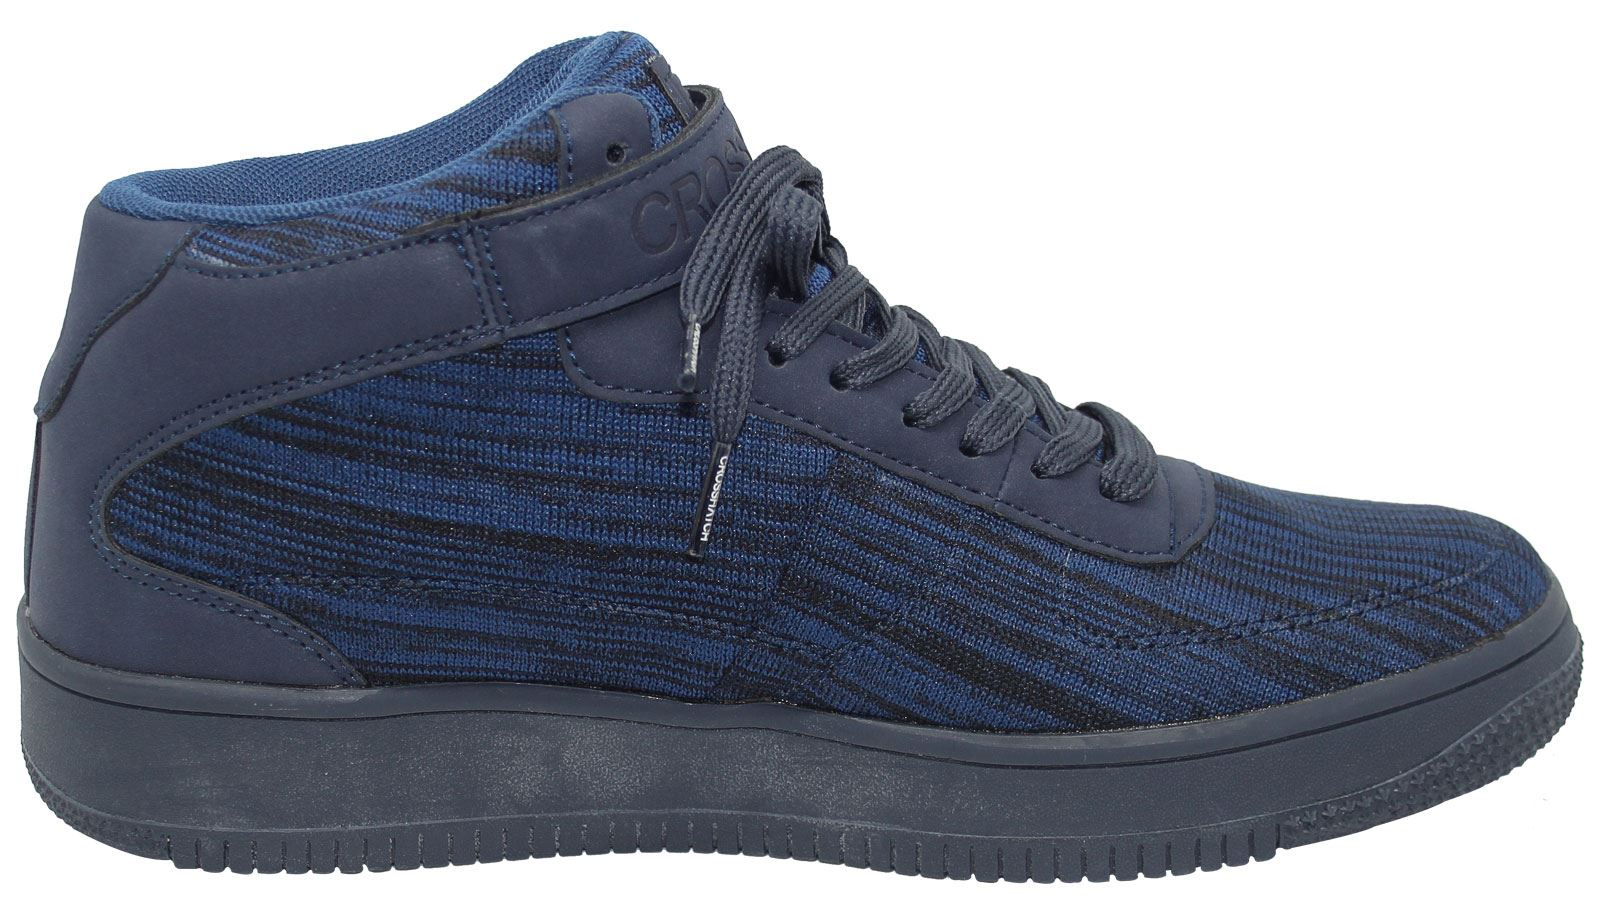 Mens-New-Crosshatch-Fleetfoot-Trainers-Hi-Top-Ankle-Boots-Lace-up-Comfy-Shoes thumbnail 41